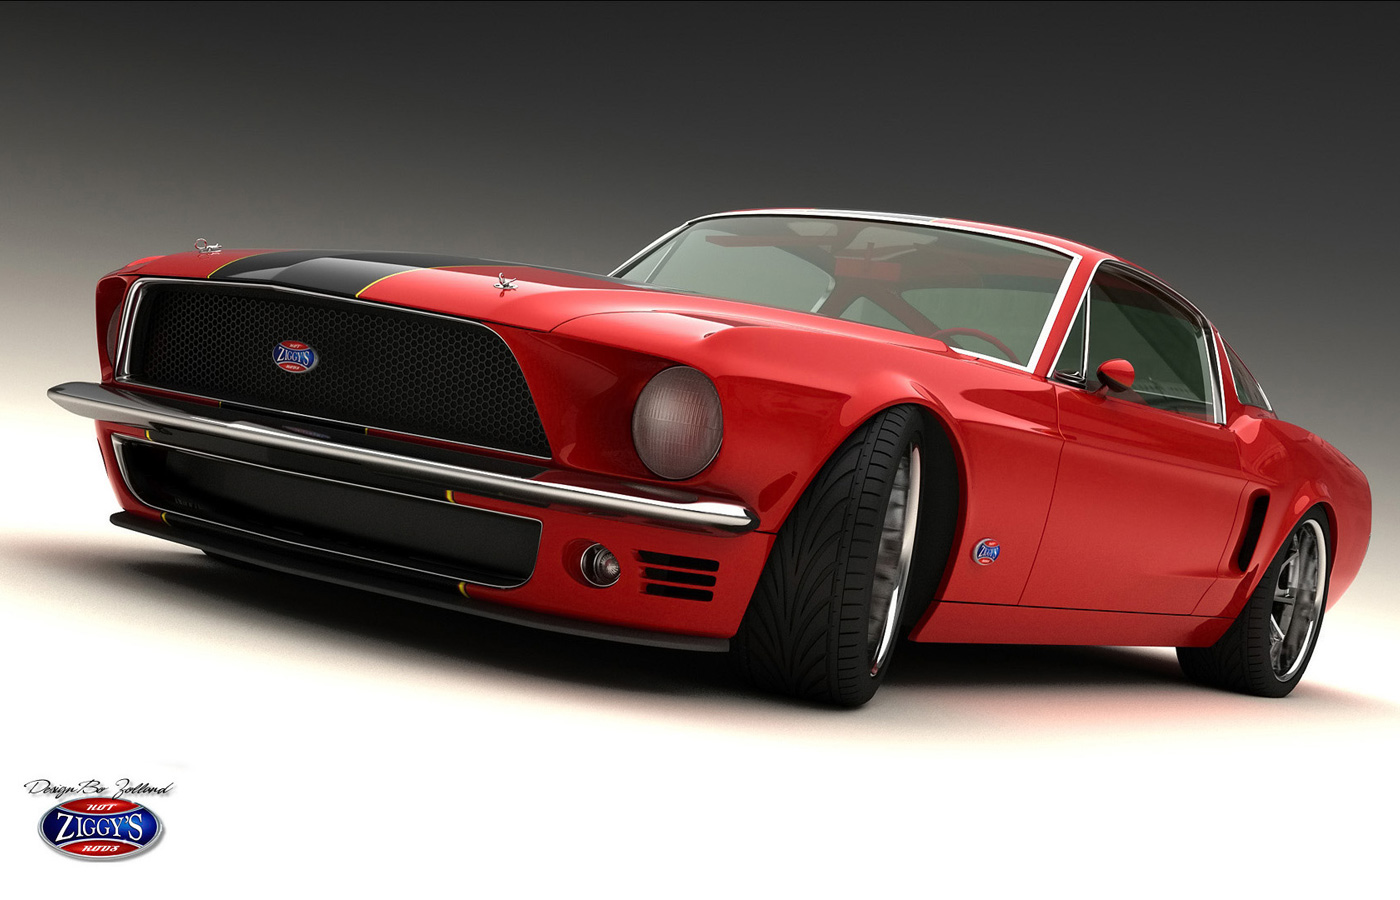 Classic Mustang Fastback wallpaper   Classic Mustang Fastback by 1400x900